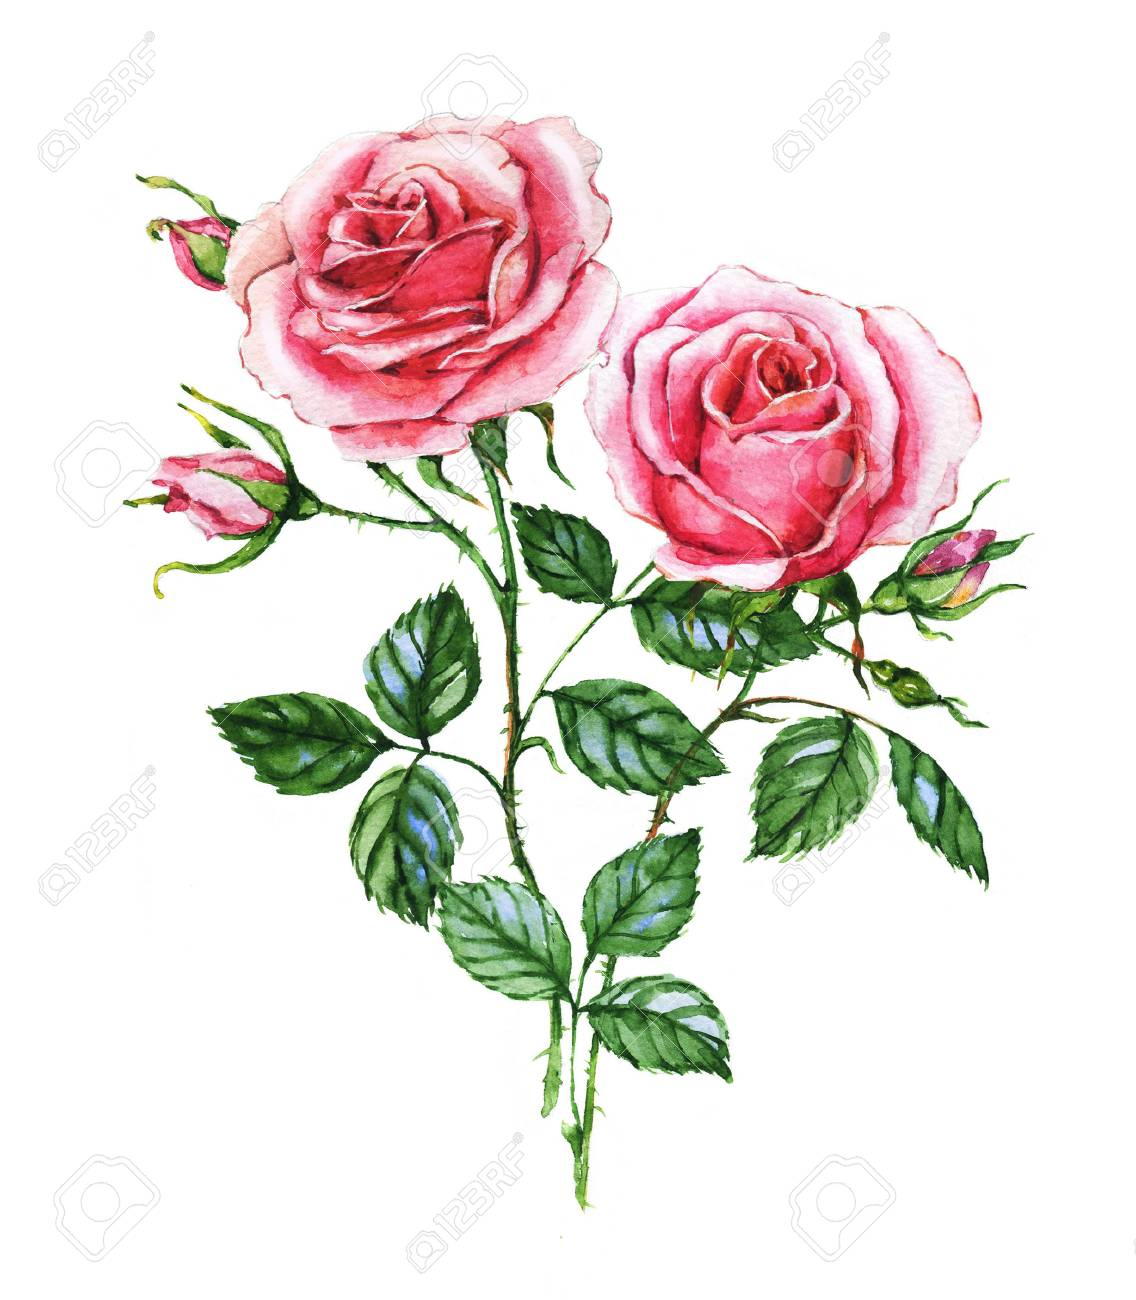 Watercolor Botanical Illustration Of Pink Roses Hand Painting